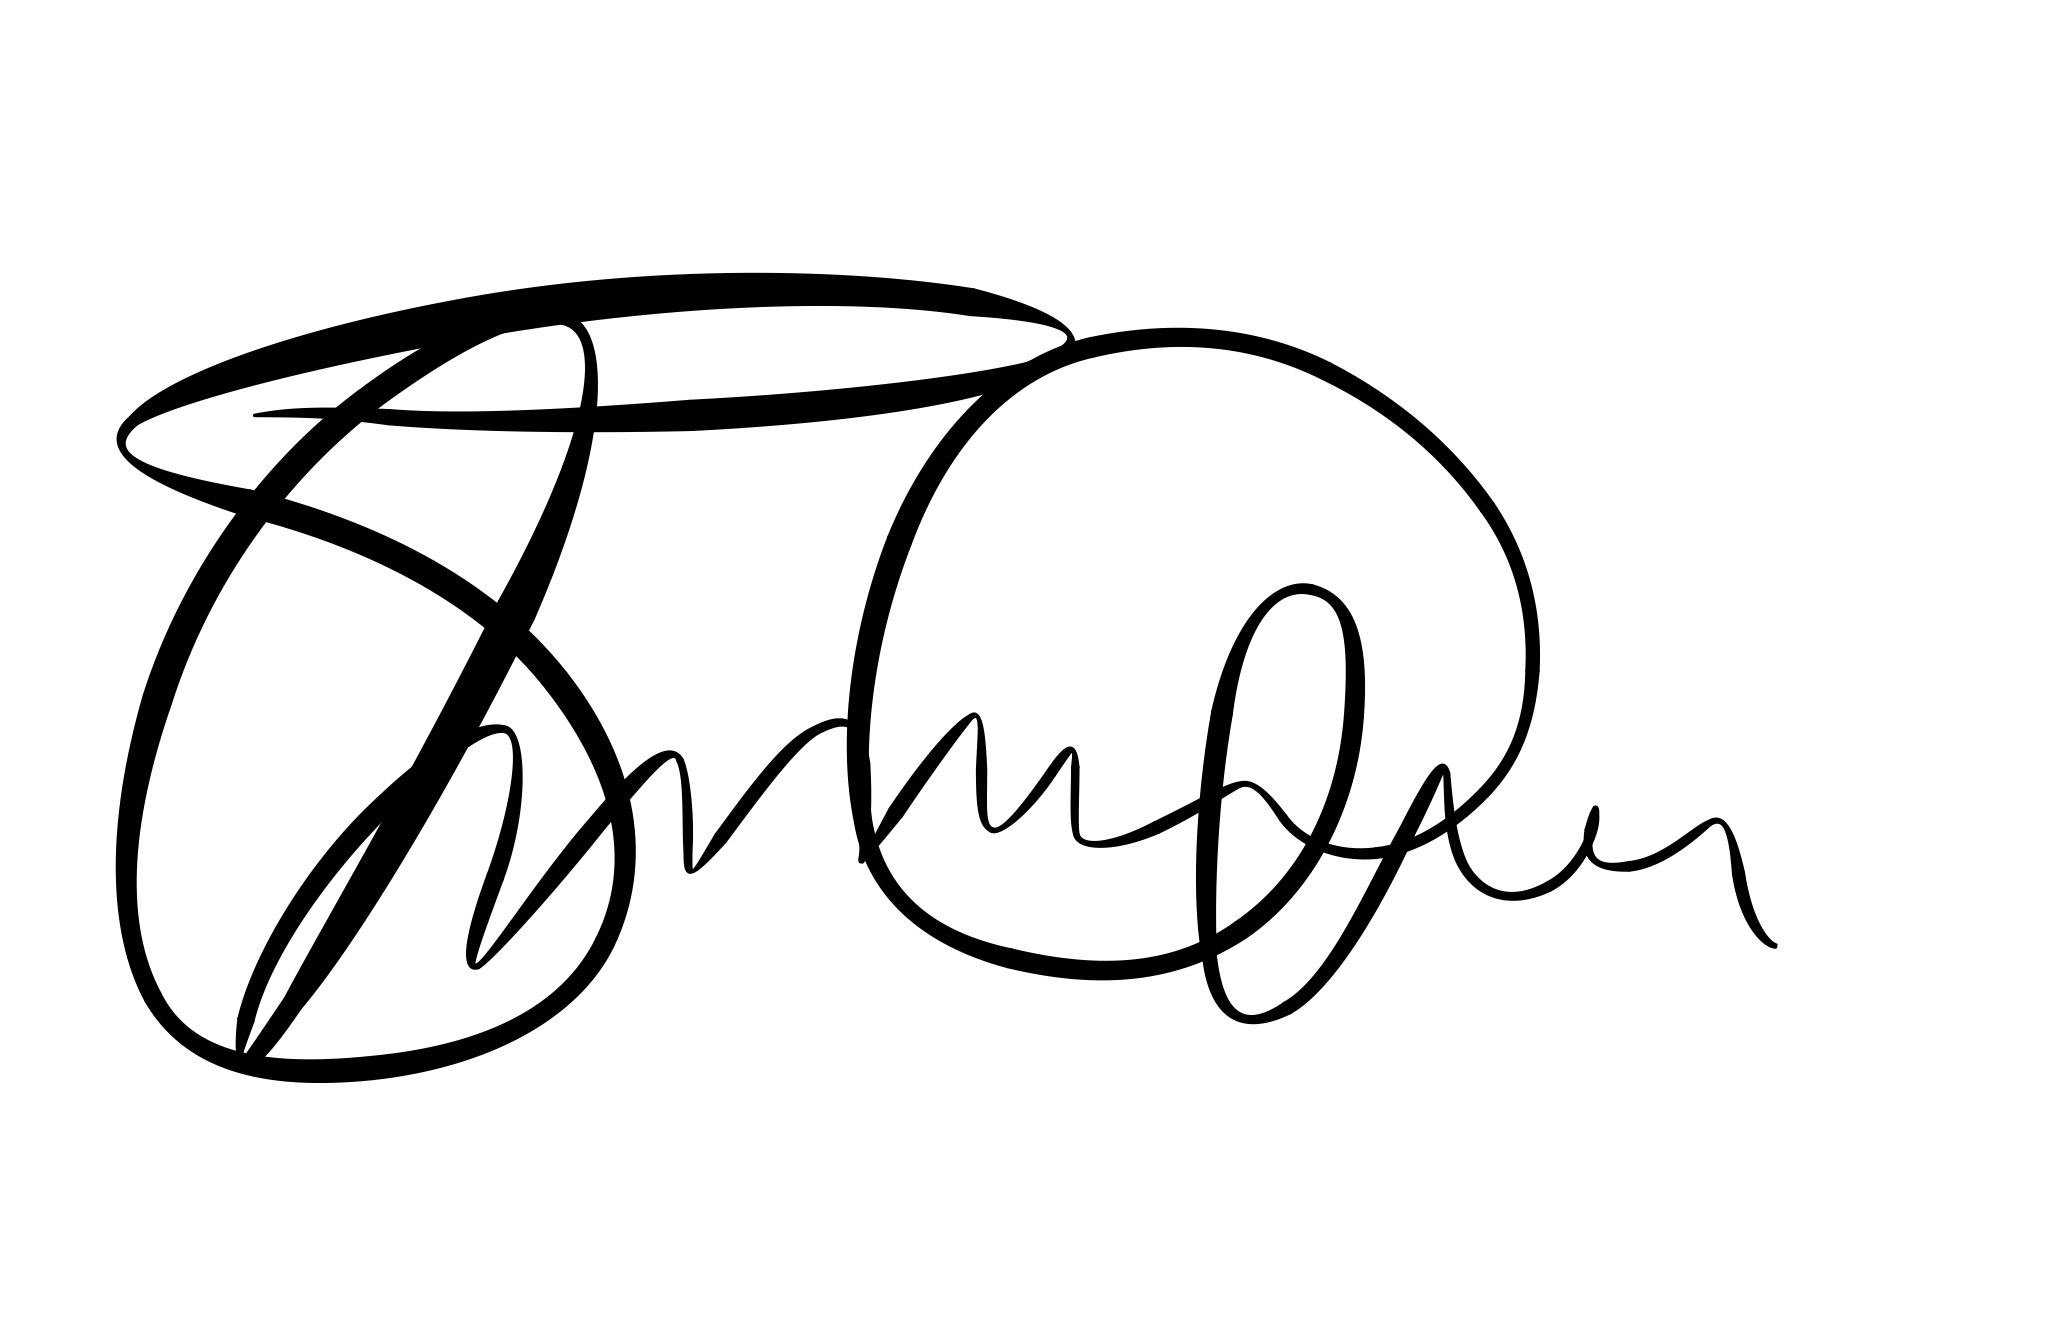 Shawn Owen Signature